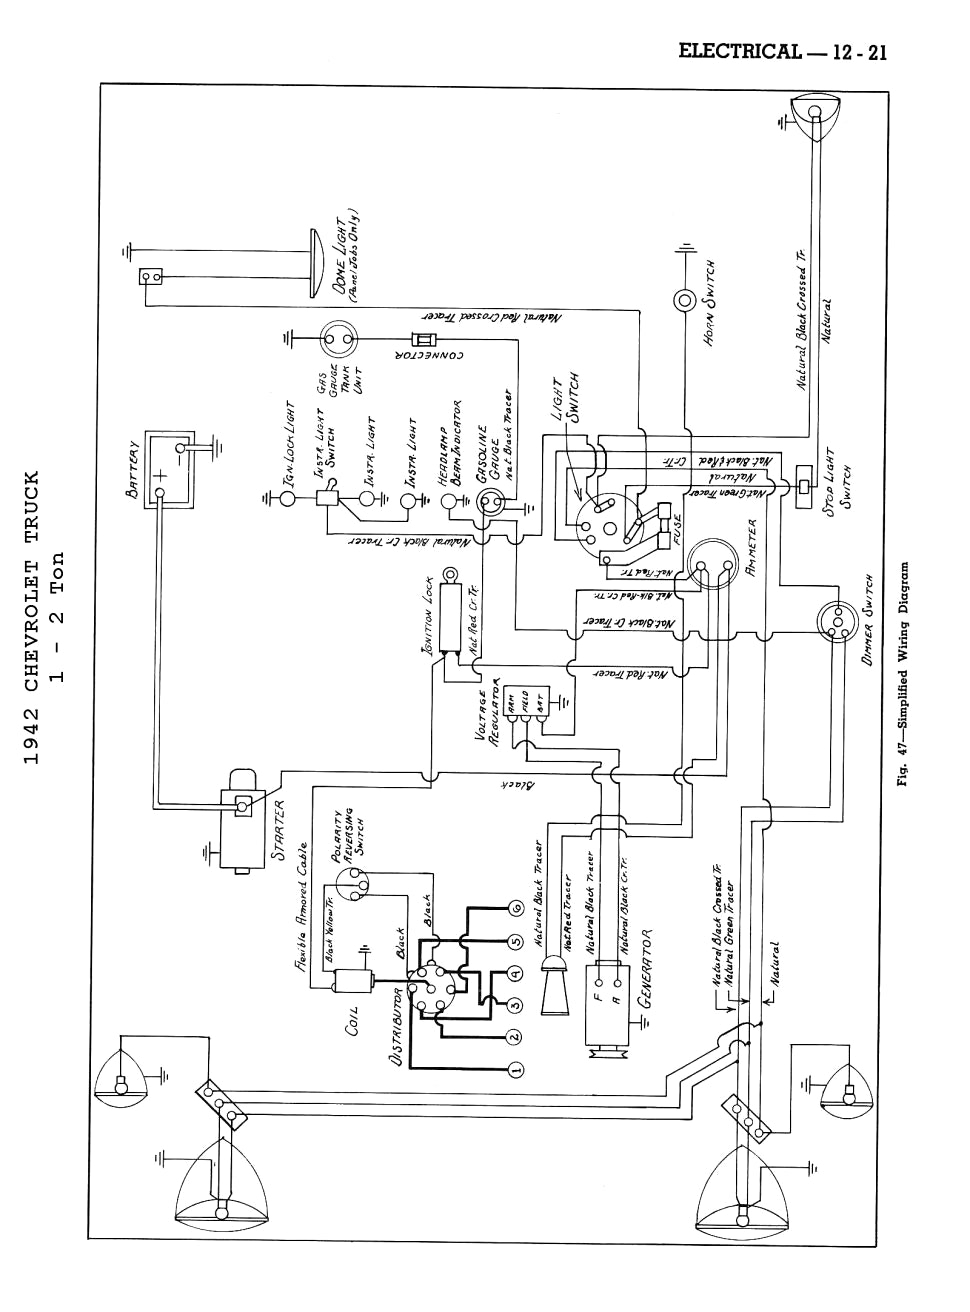 Coleman Mach Thermostat Wiring Diagram Gallery Heater Duo Therm Diagrams Suburban Rv Furnace